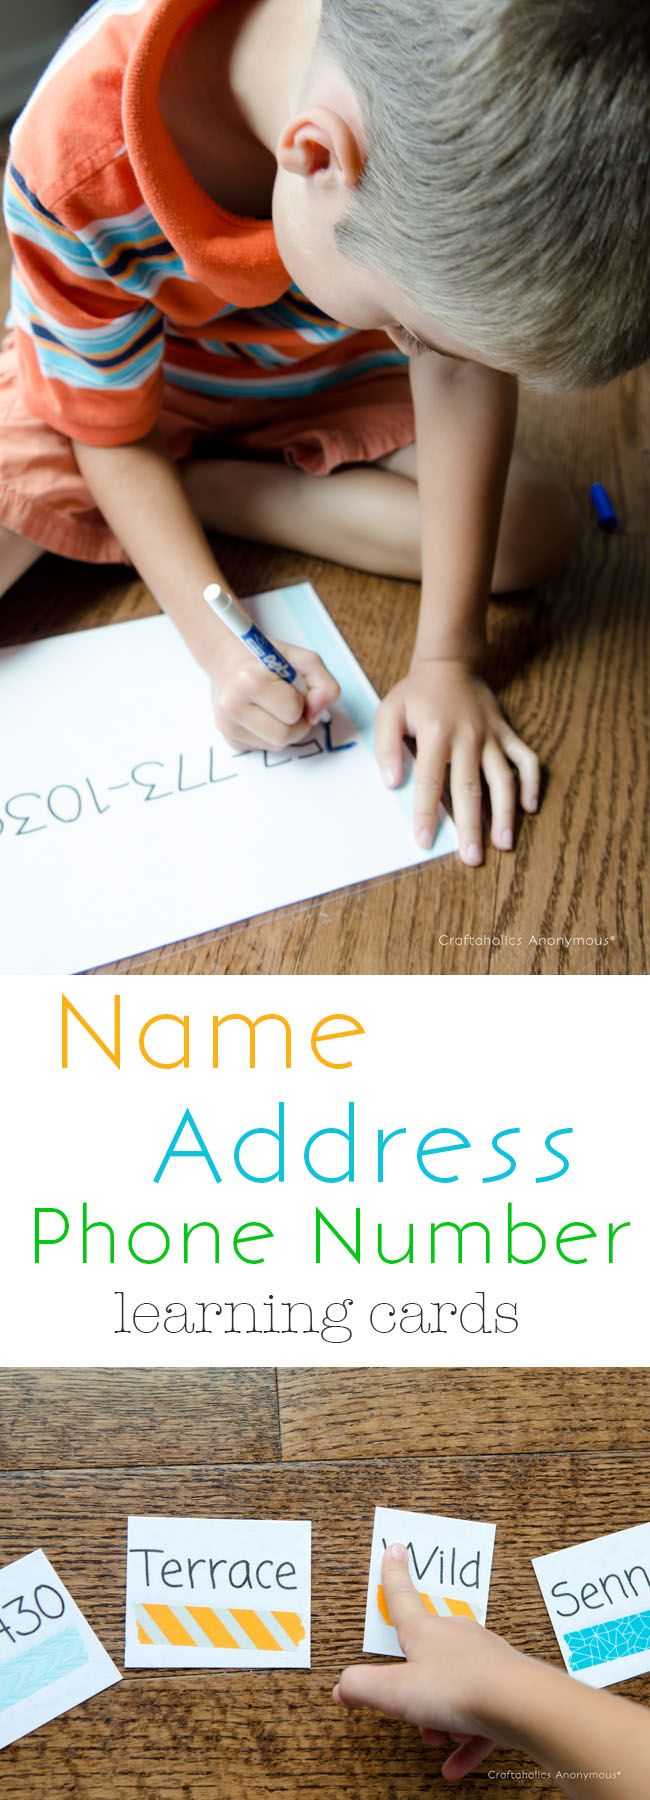 Make Kindergarten prep cards- Name, Address, Phone number to help teach Preschoolers.